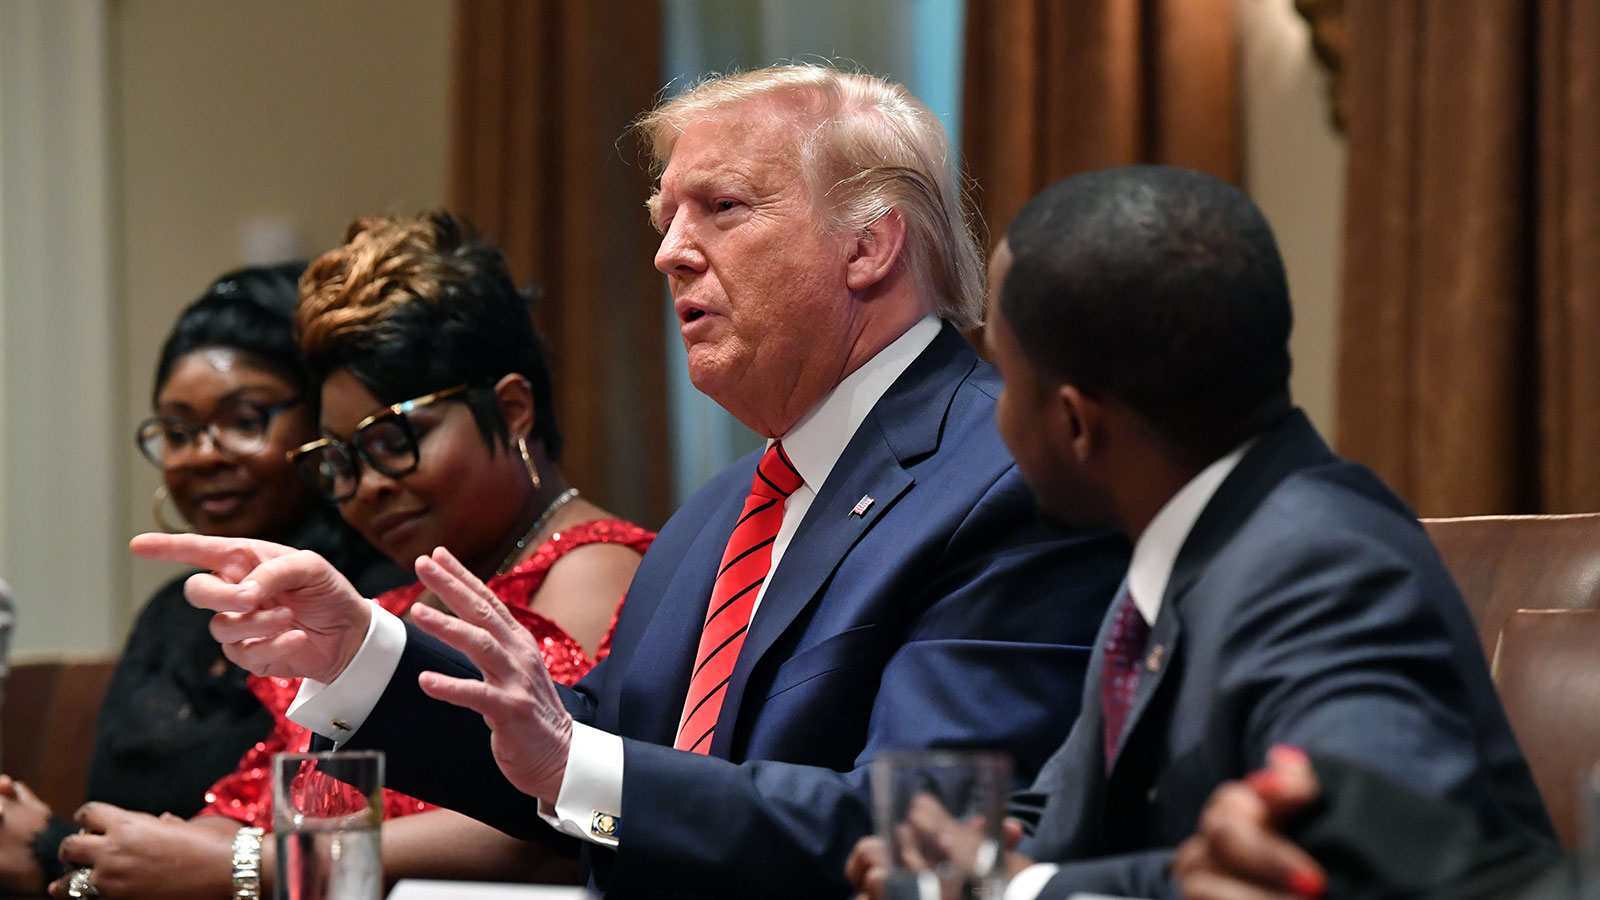 President Donald Trump speaks during an African-American History Month reception in the Cabinet Room of the White House on Feb. 27.